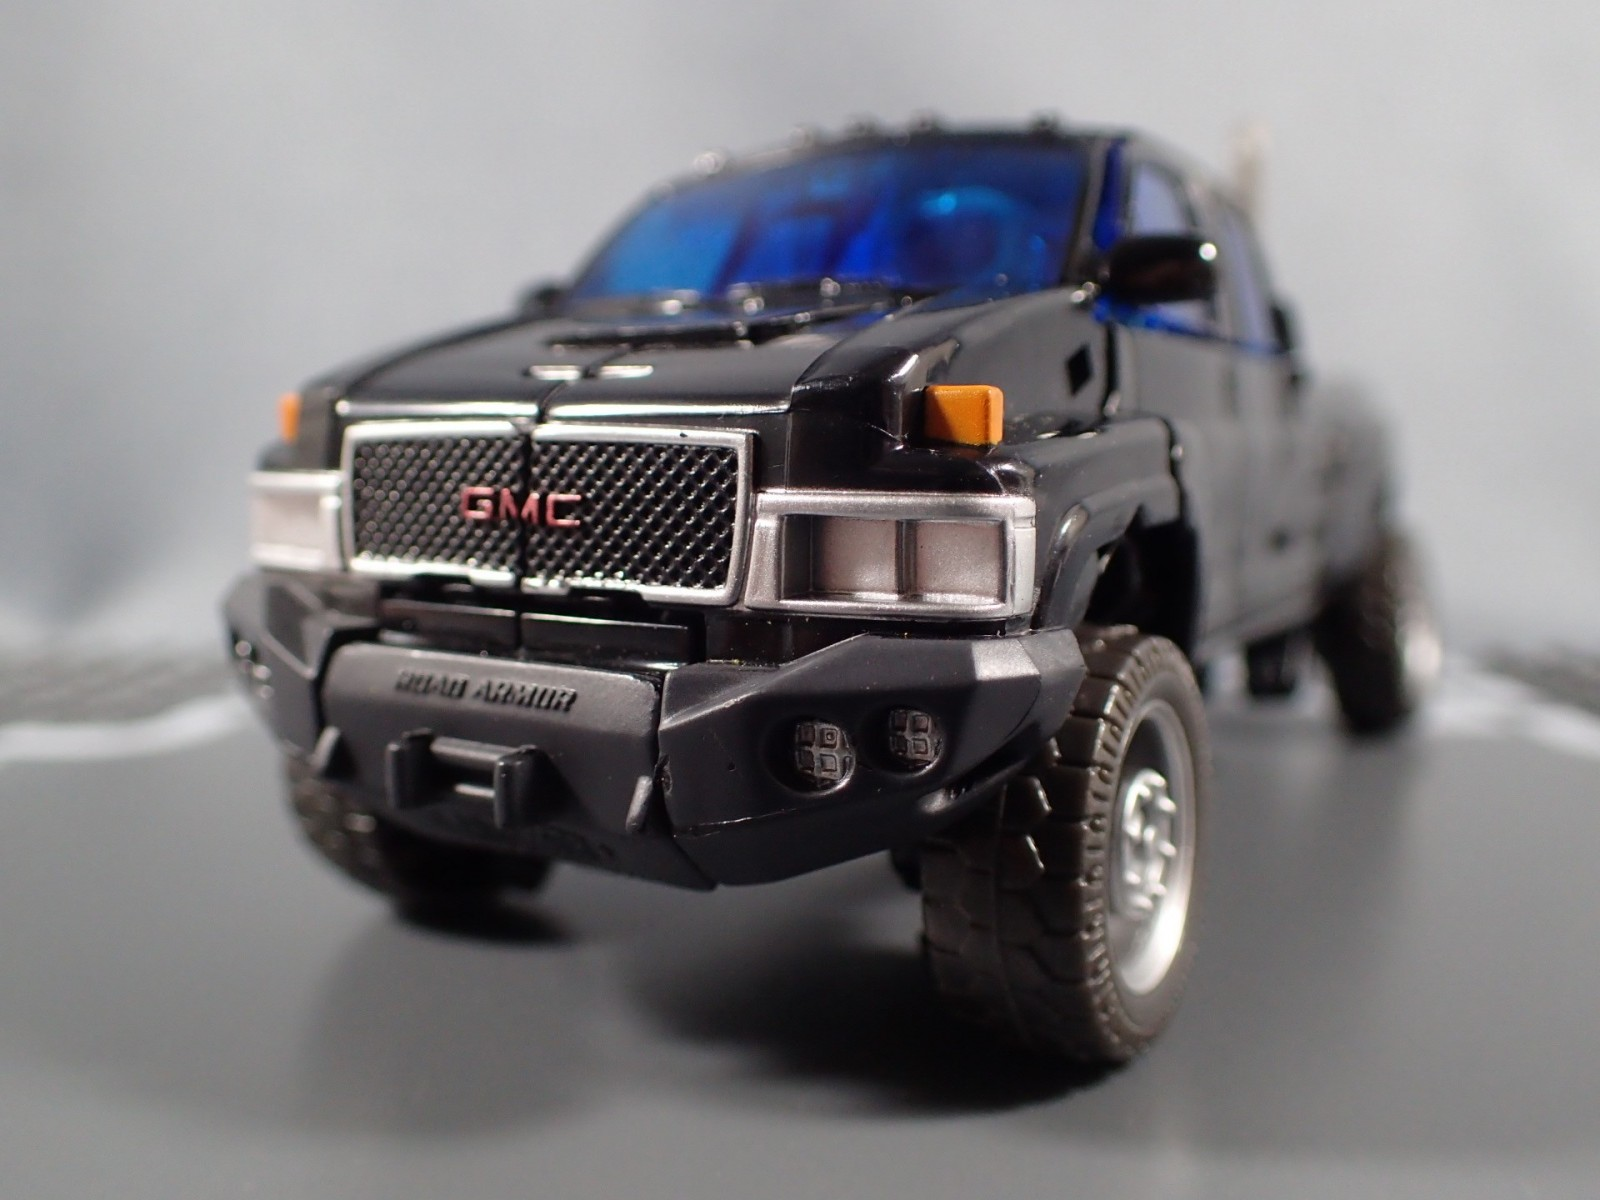 Transformers News: In hand Images and Comparisons of  Takara Movie The Best Ironhide, Ratchet, Soundwave and Starscream